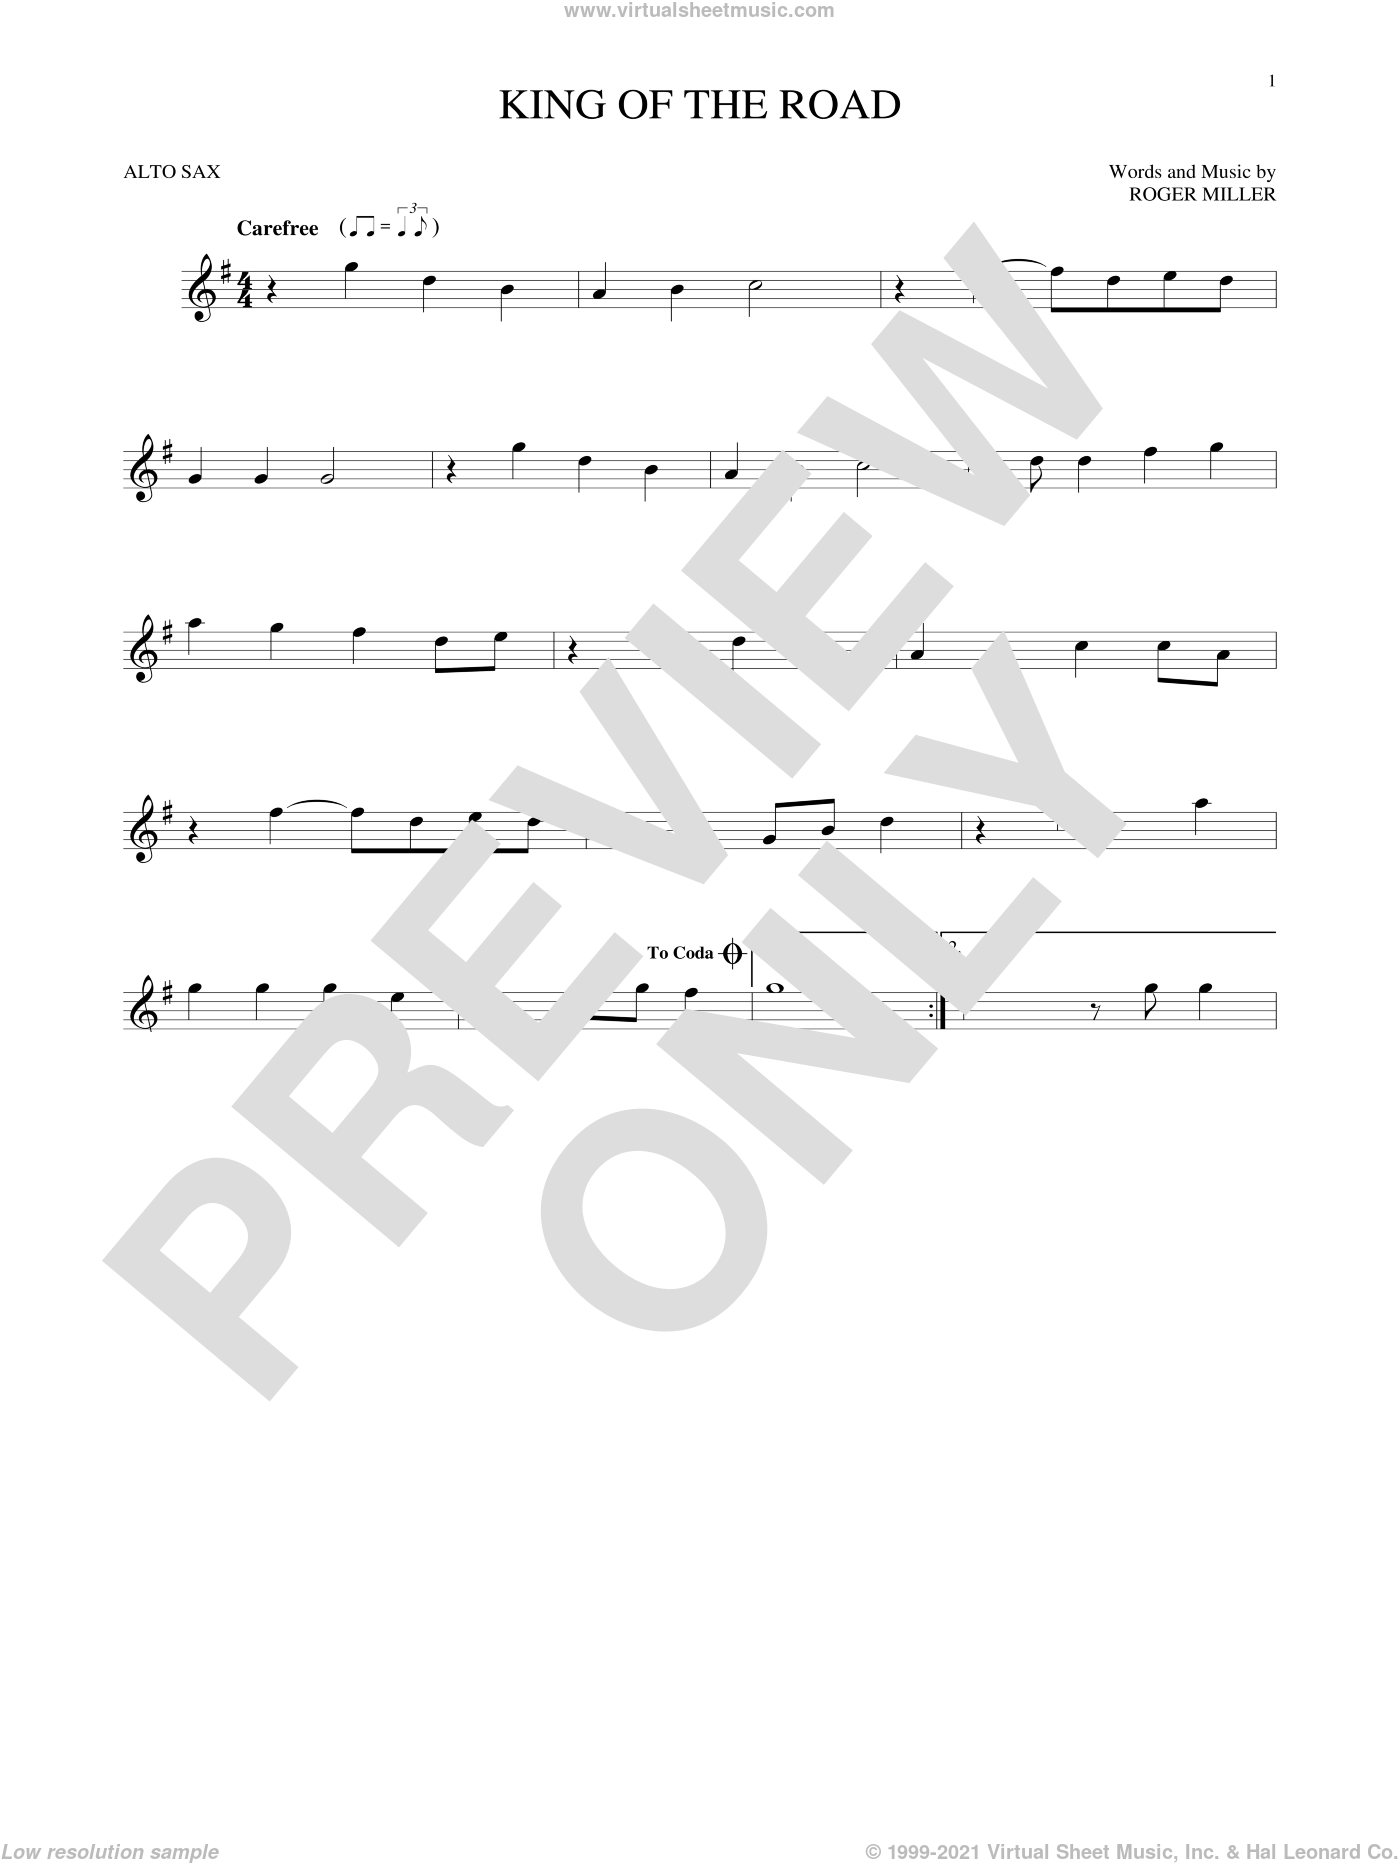 King Of The Road sheet music for alto saxophone solo by Roger Miller and Randy Travis, intermediate skill level